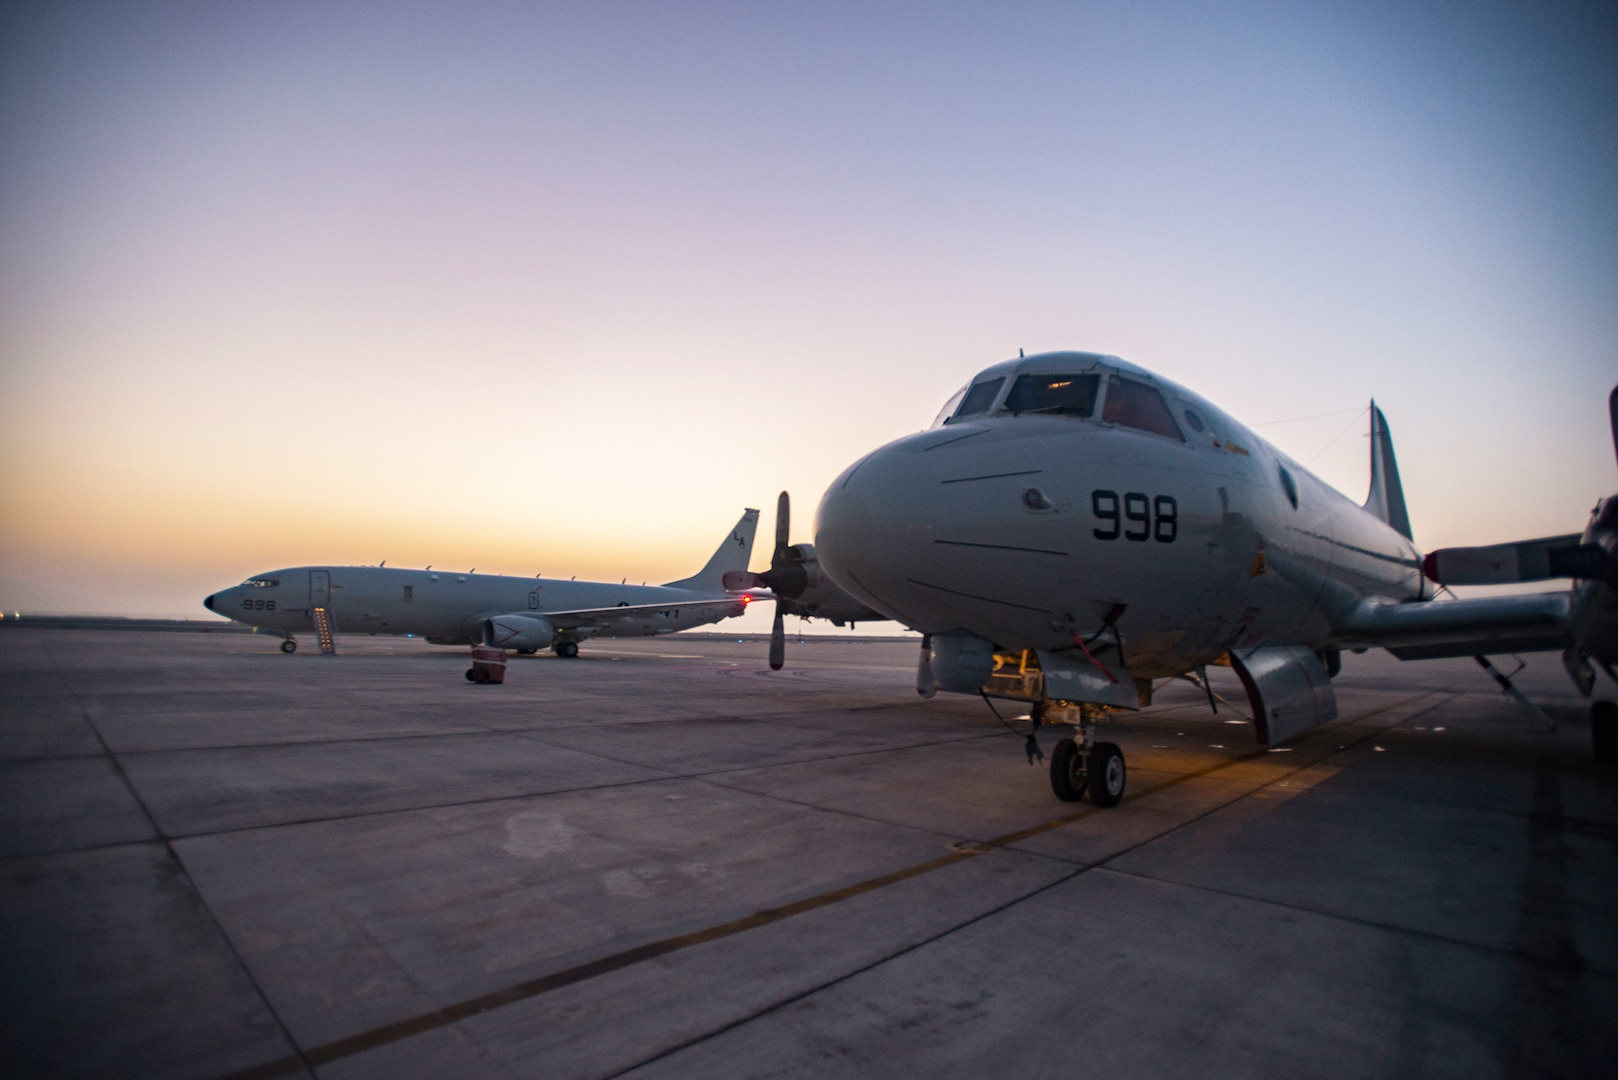 U.S. Navy P-8A to Join ADMM-Plus Maritime Security Exercise in Korea